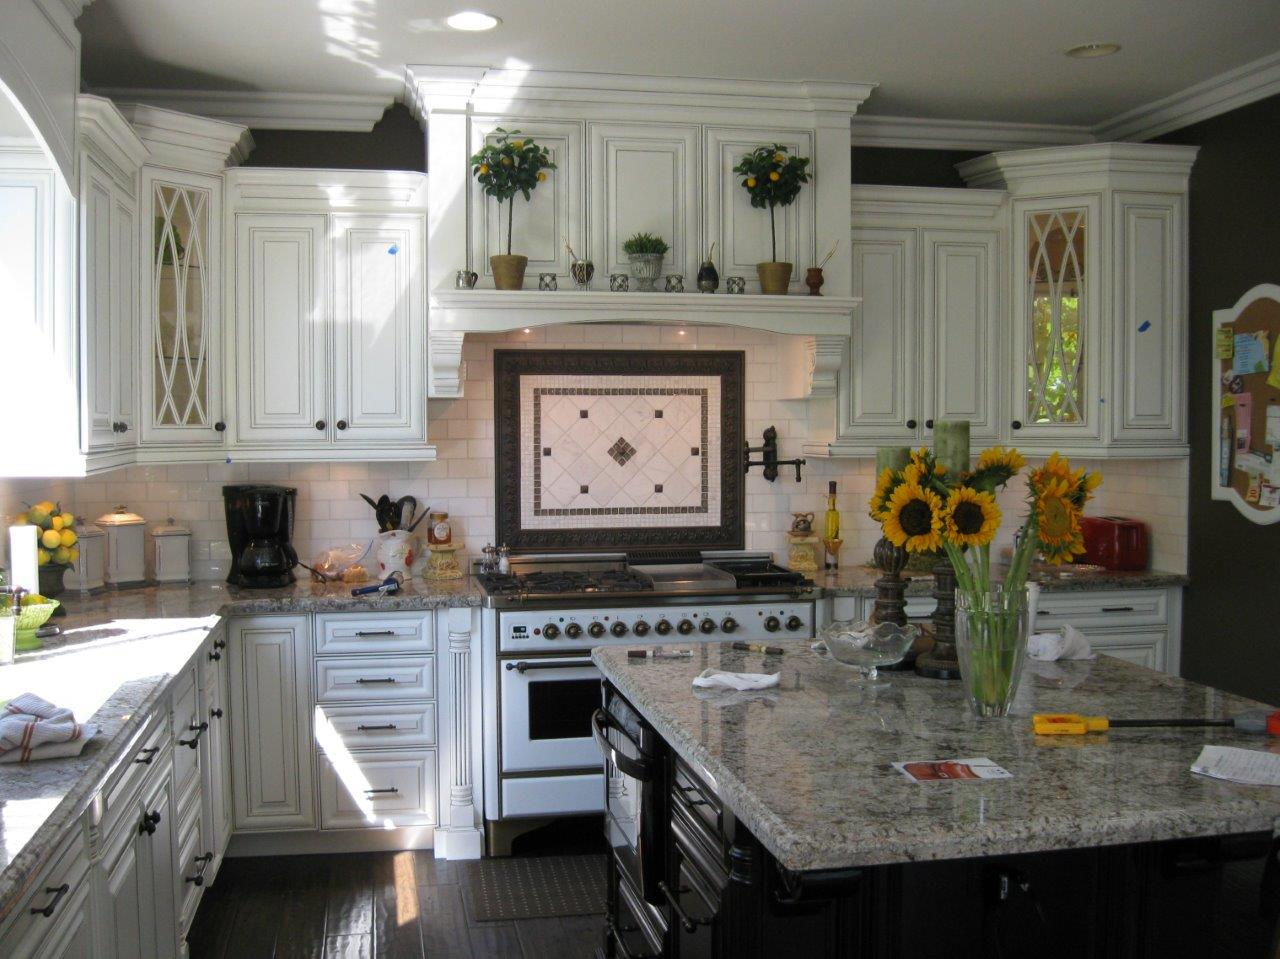 kitchen remodel in yorba linda ⋆ cabinet wholesalers: kitchen